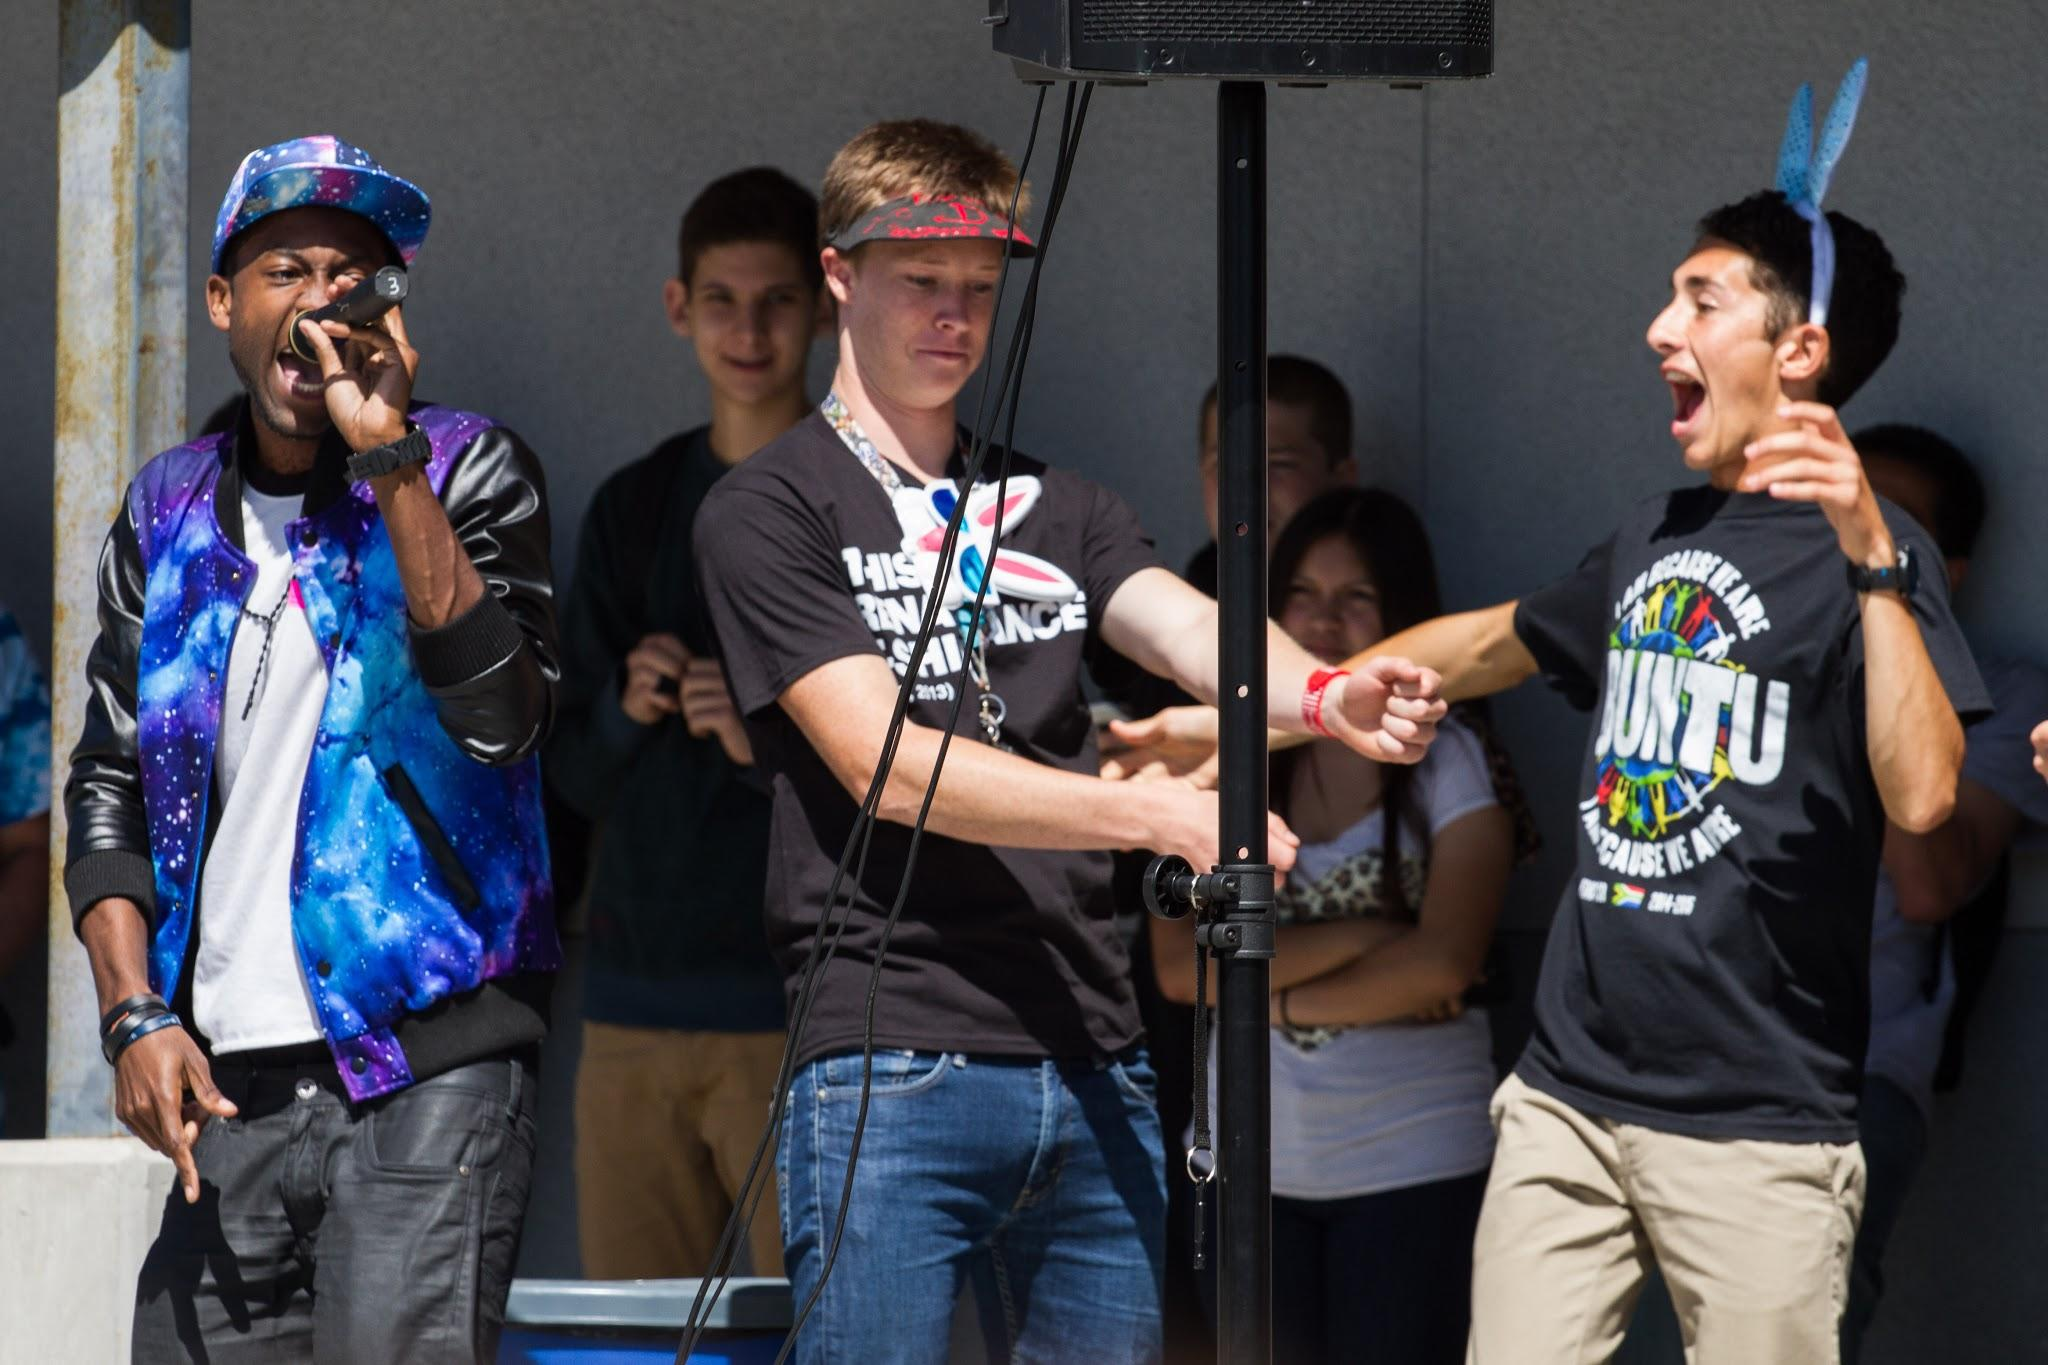 ASB Presicent Nick Vaughan and Vice President dance along with Storm. Credit: Austin Hunt /The Foothill Dragon Press